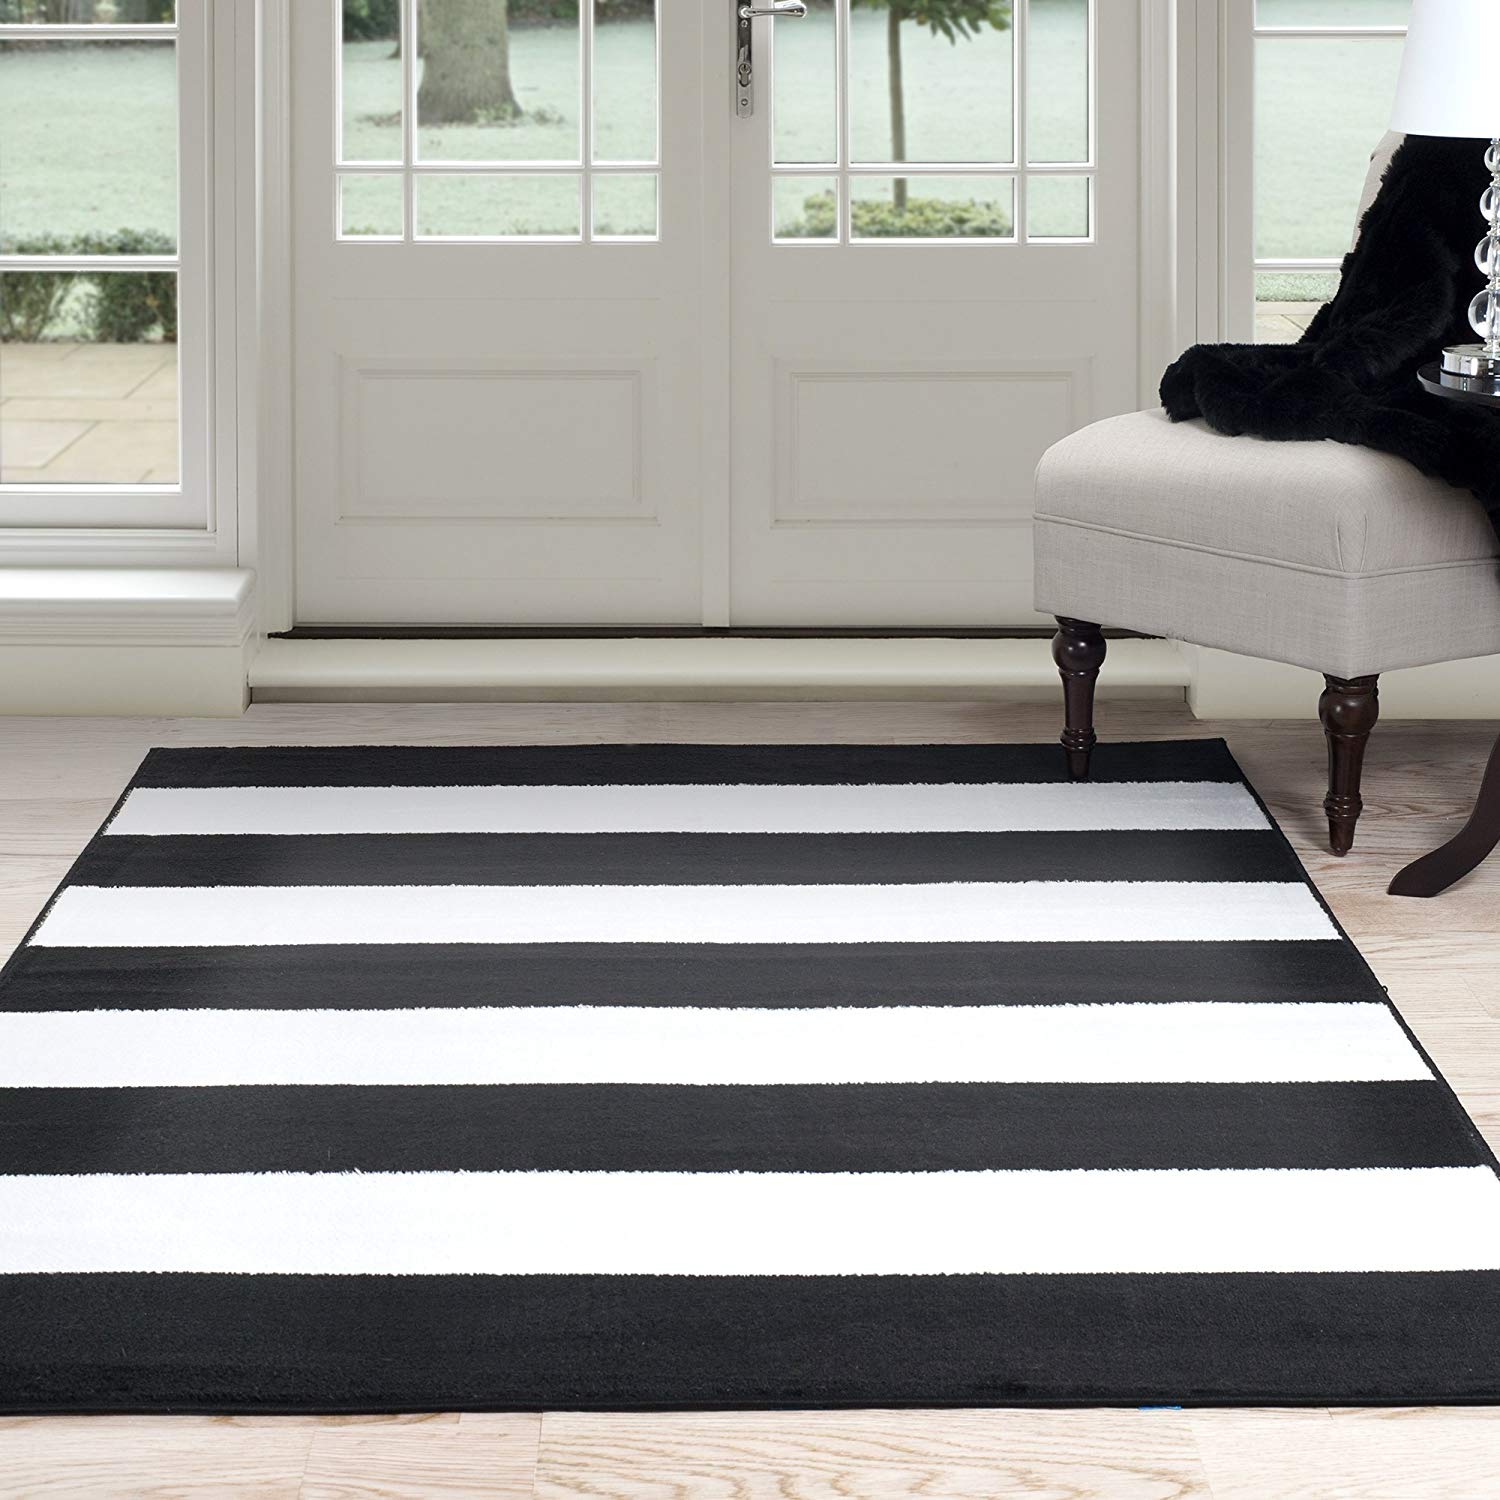 black and white rugs amazon.com: lavish home breton stripe area rug, 5u0027 by 7u00277 ZQZZAXQ